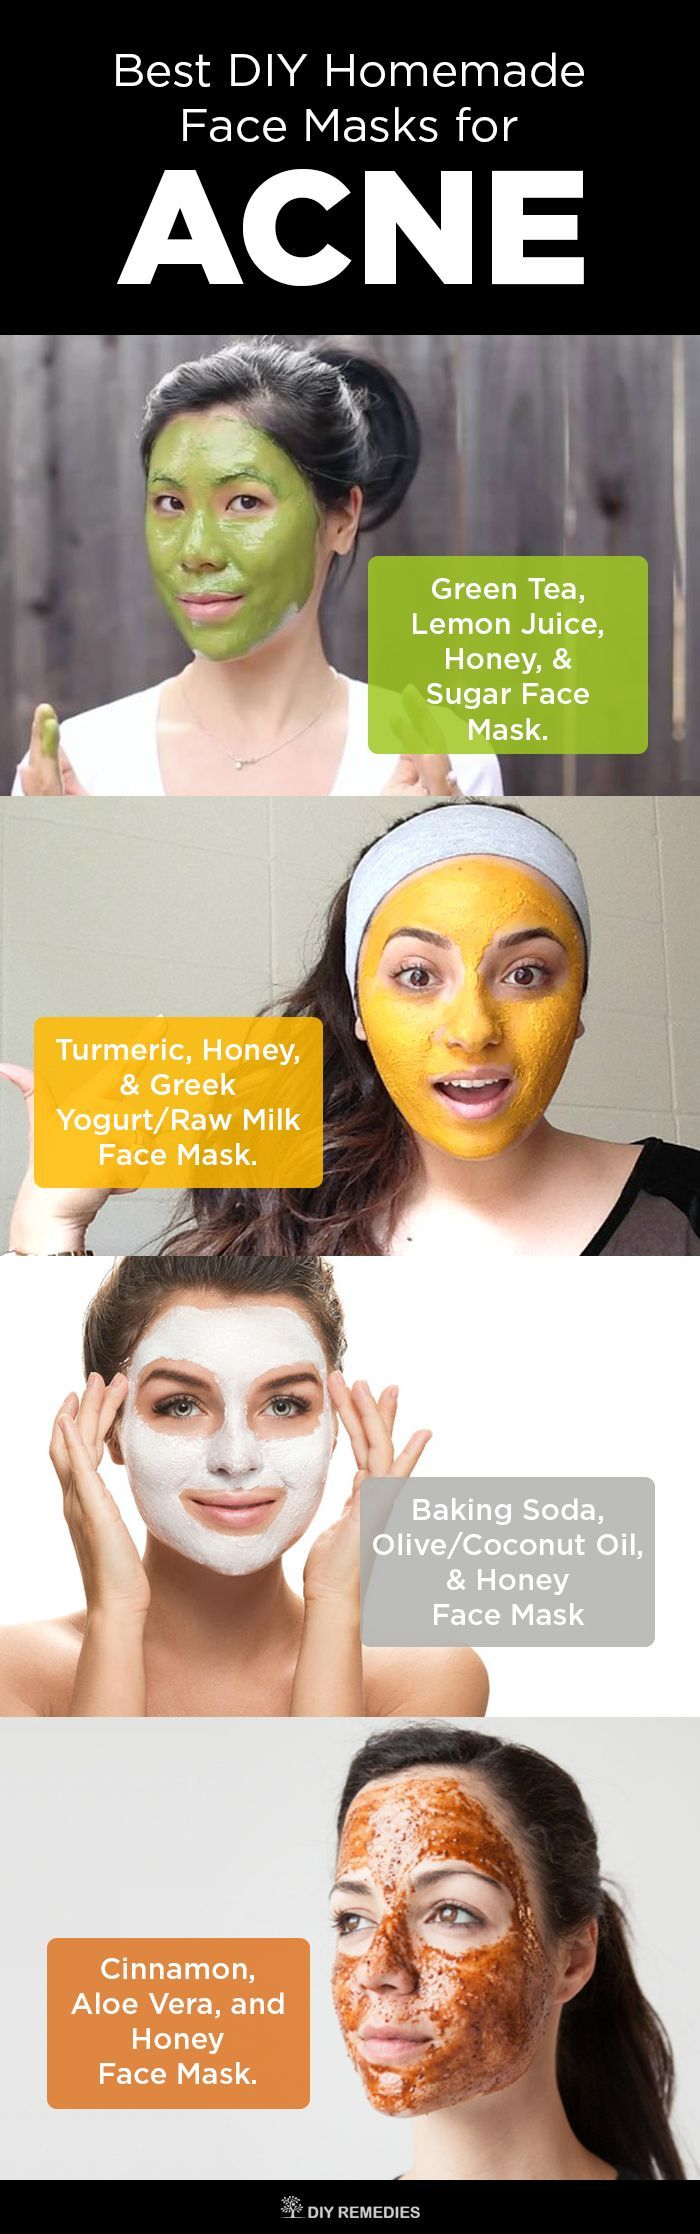 6 Best DIY Homemade Face Masks for Acne , Follow PowerRecipes For More.